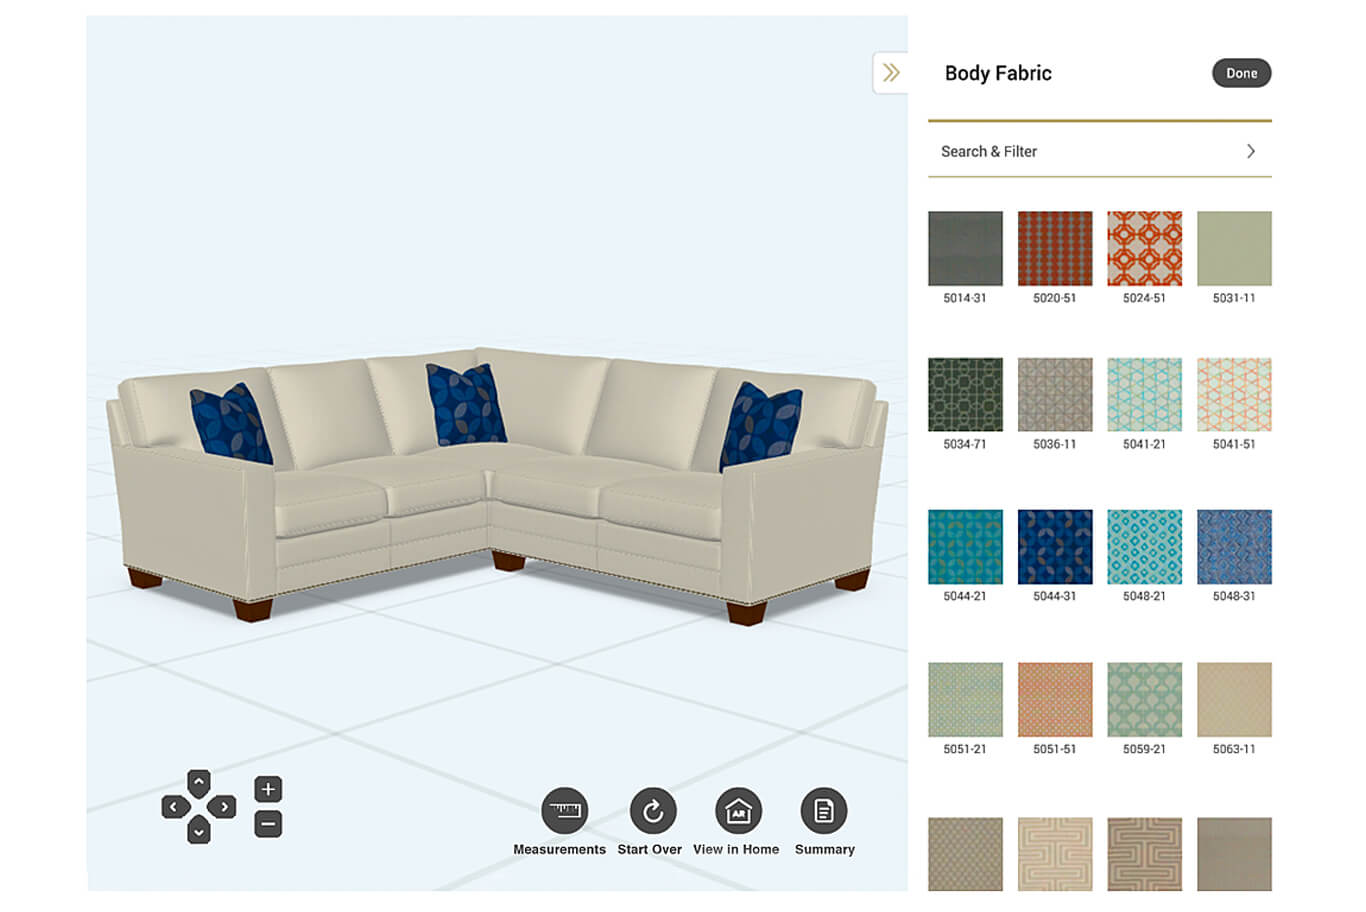 Custom furniture builder with swatches